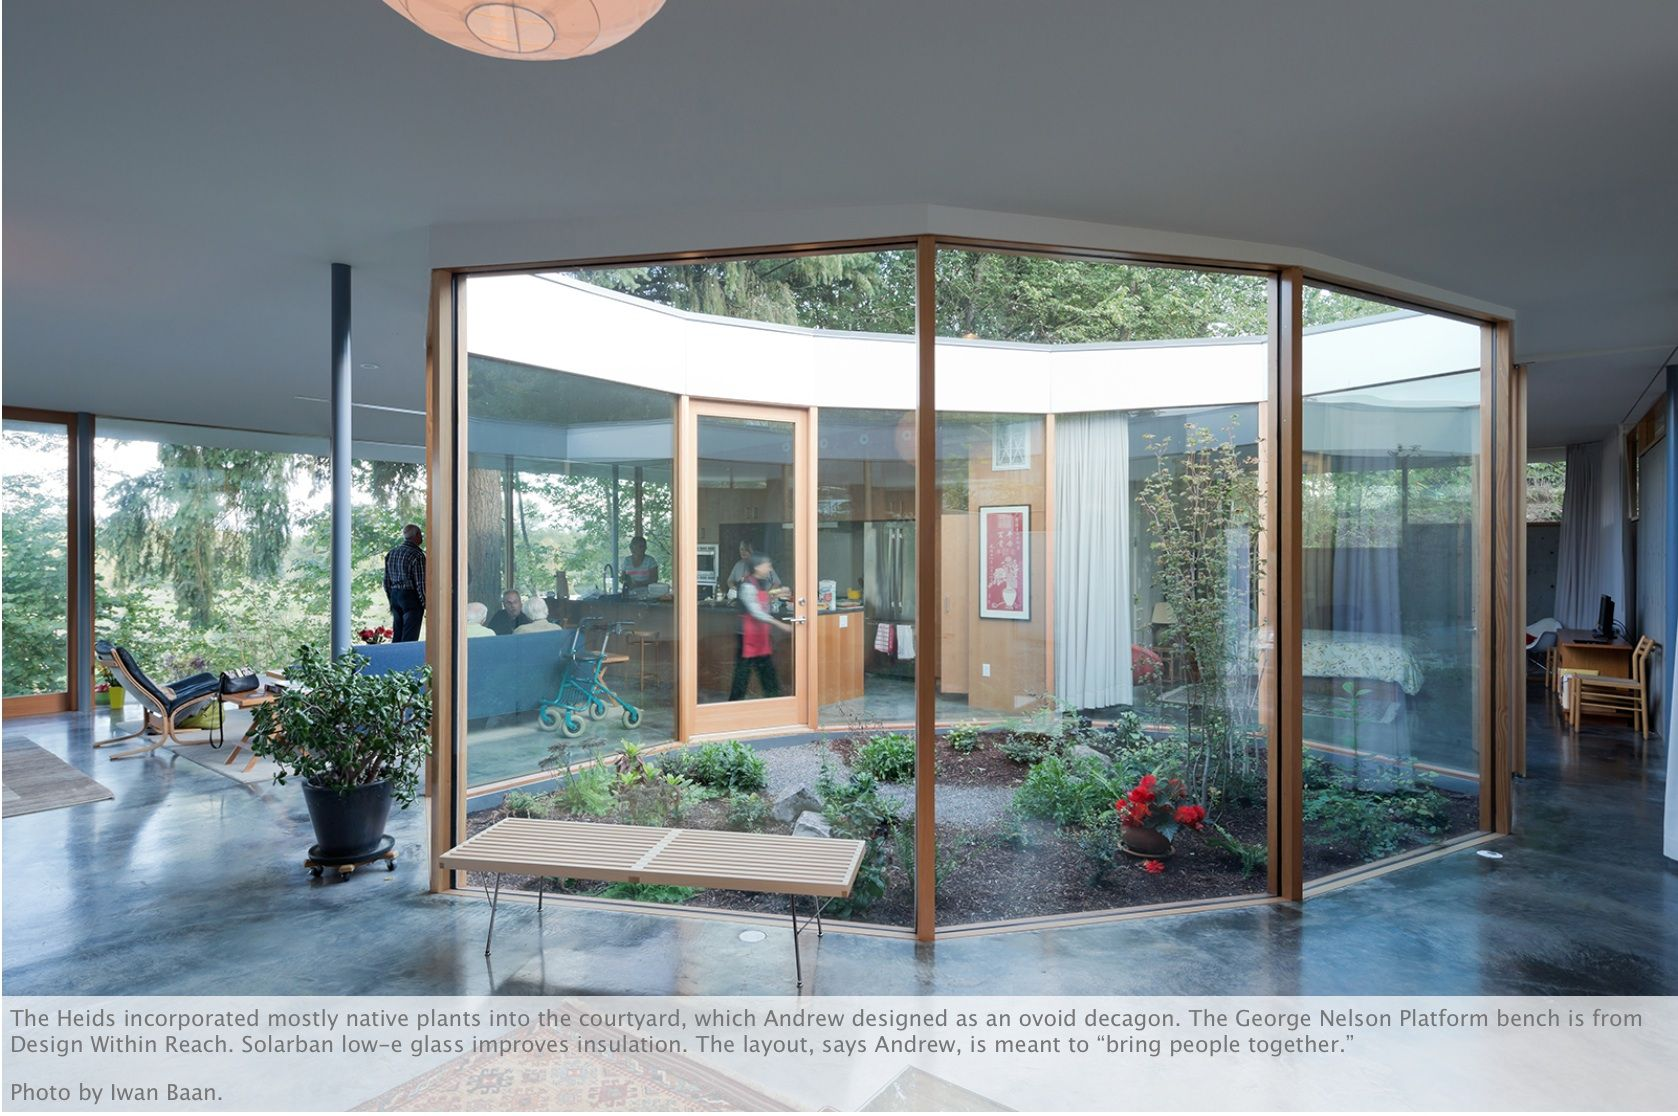 House and garden interiors - A Garden In The Center Of The House Let The Light Shine In I